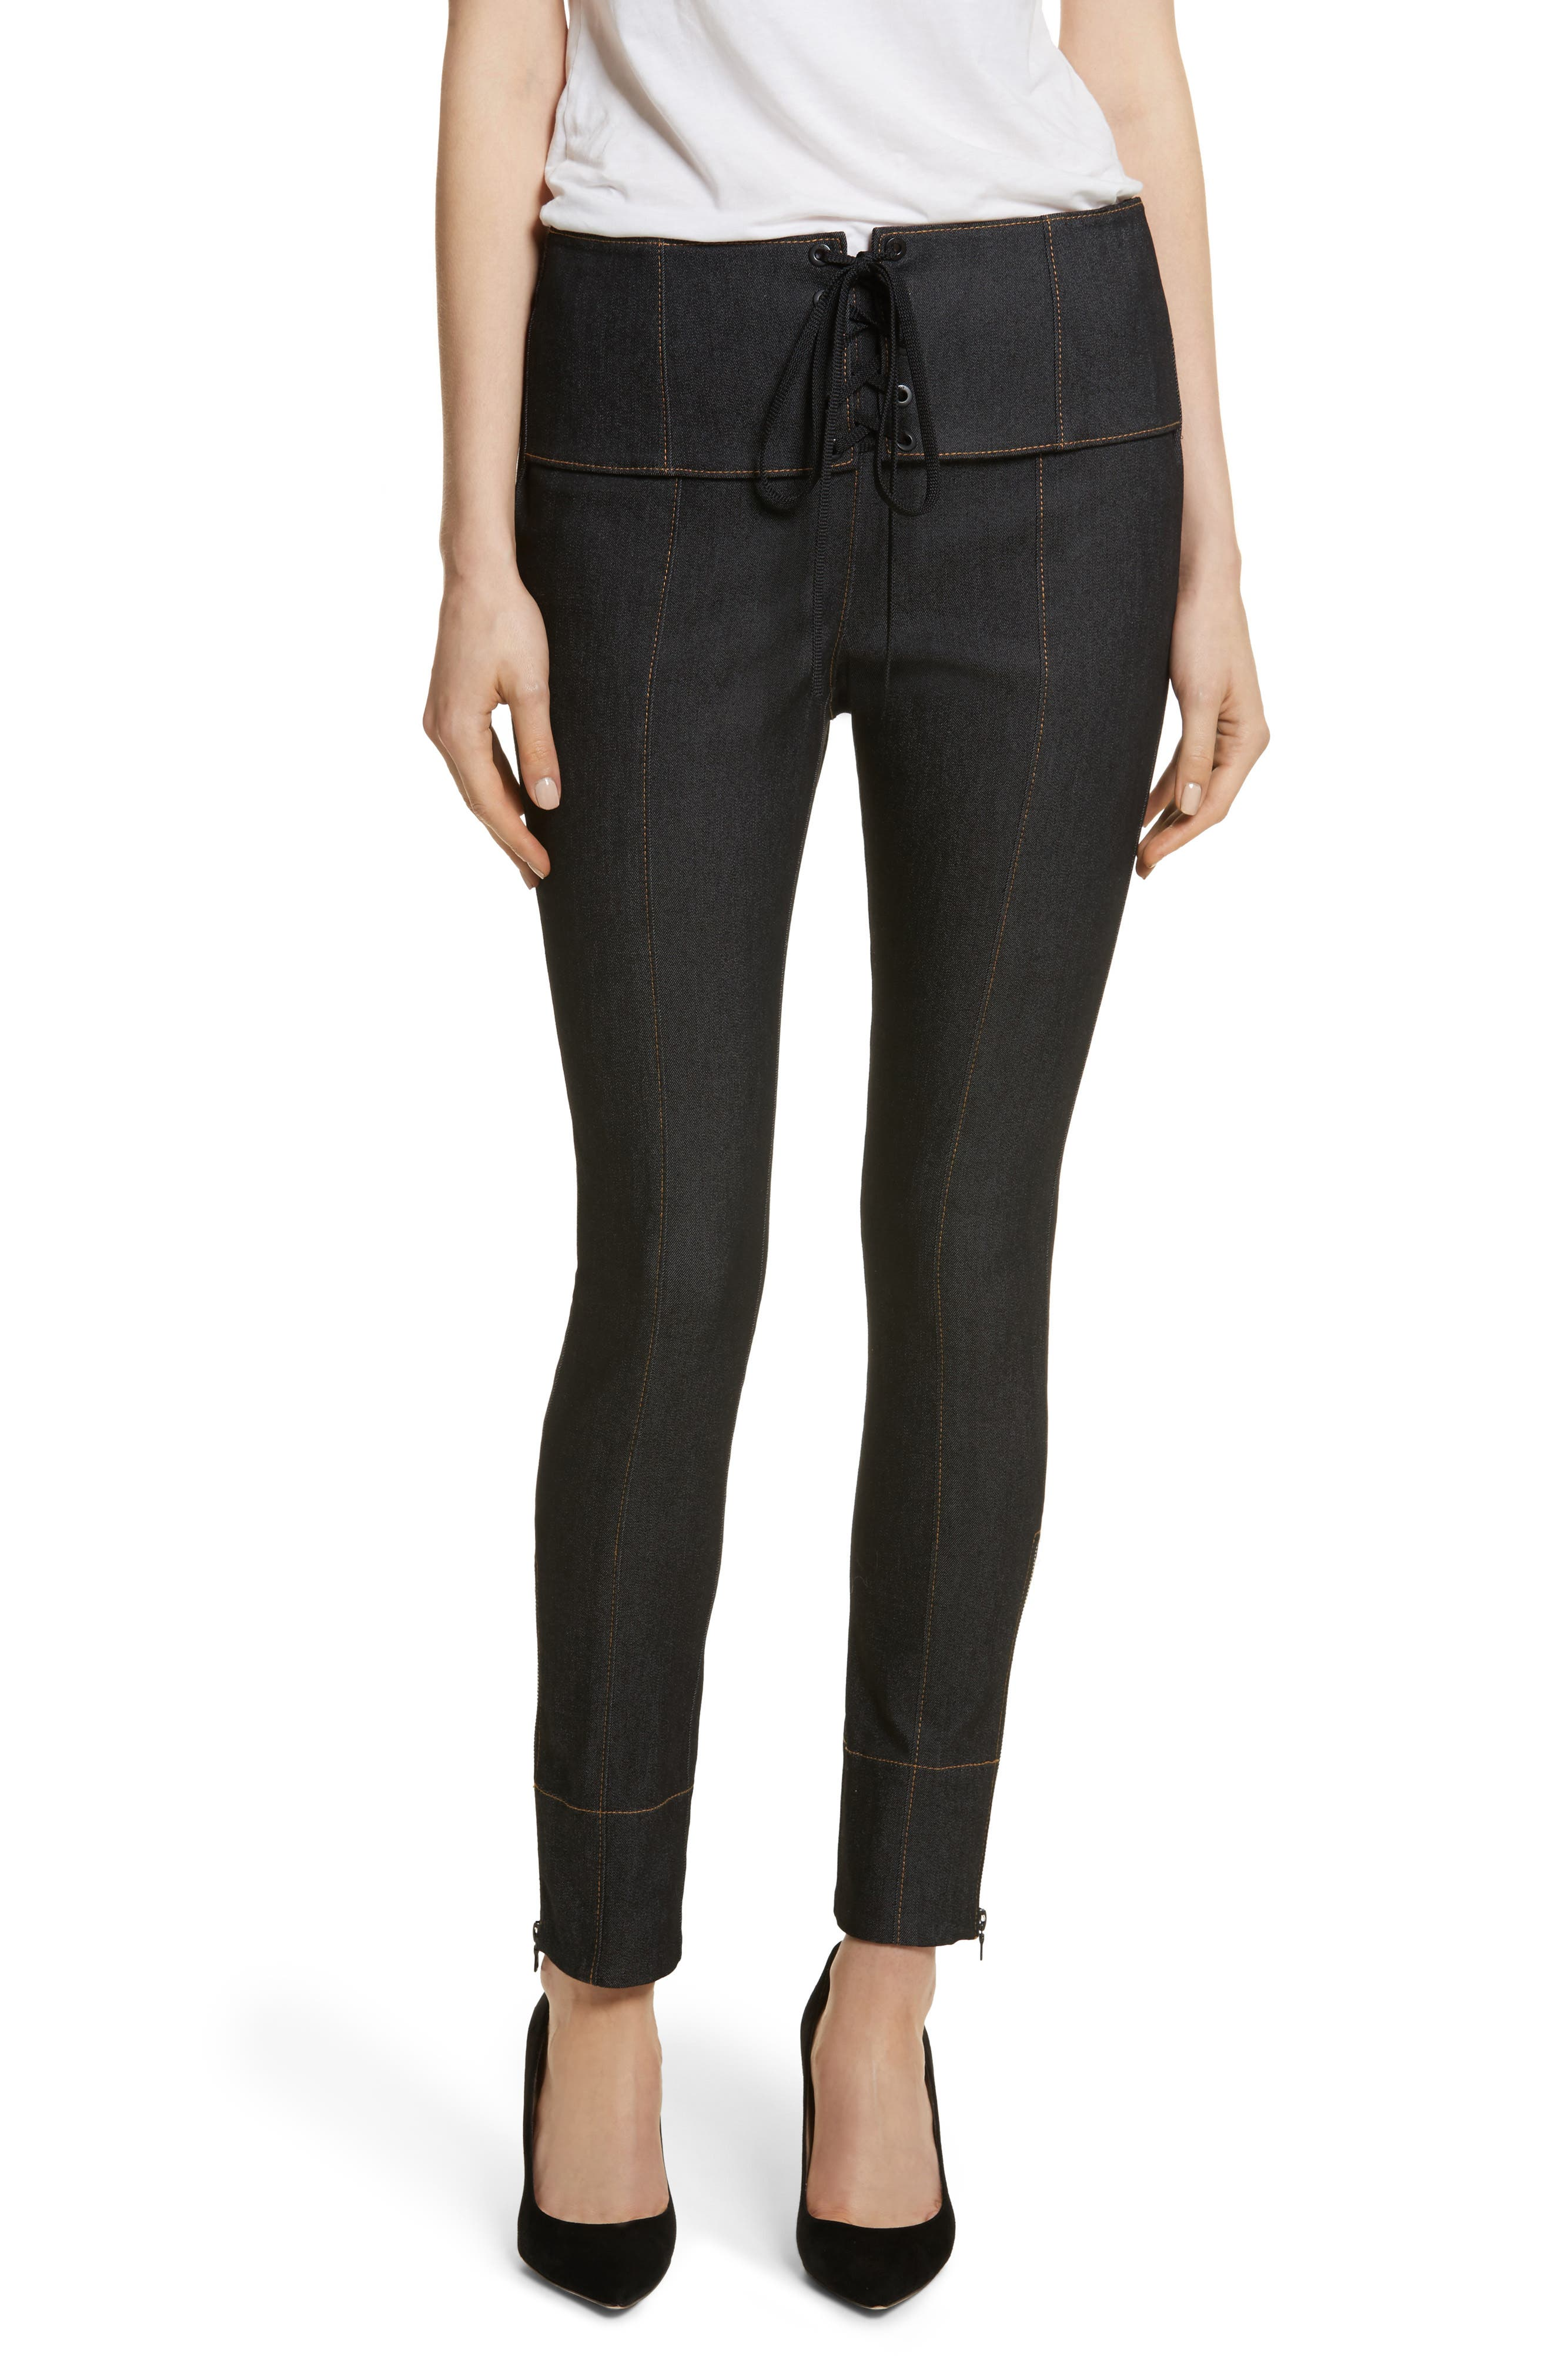 Andie Lace Front Skinny Ankle Jeans,                         Main,                         color, 001